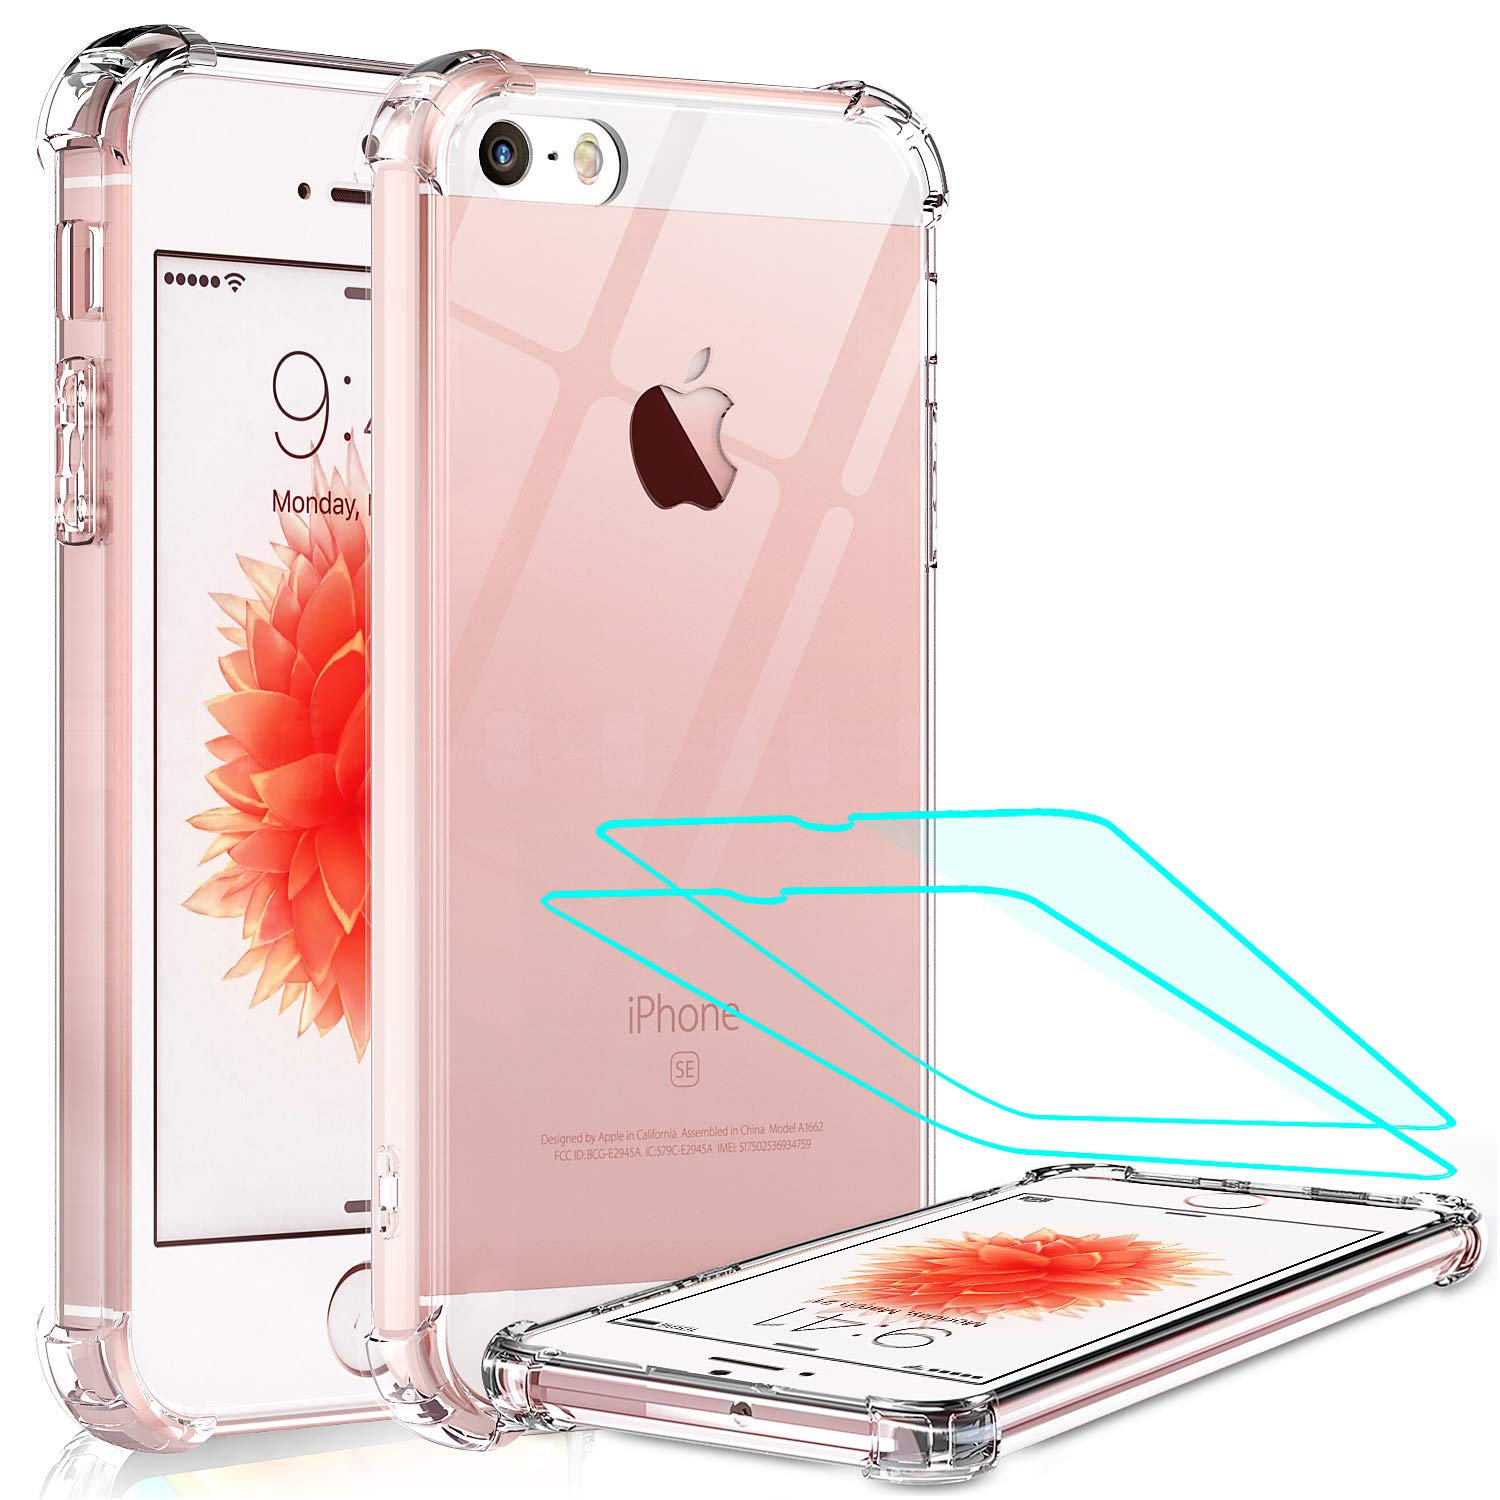 LeYi Compatible for iPhone SE Case (2016), iPhone 5S Case, iPhone 5 Case with 2 Tempered Glass Screen Protector, Crystal Clear Hard PC Soft TPU Shockproof Bumper Phone Cover Case for iPhone 5 / 5S